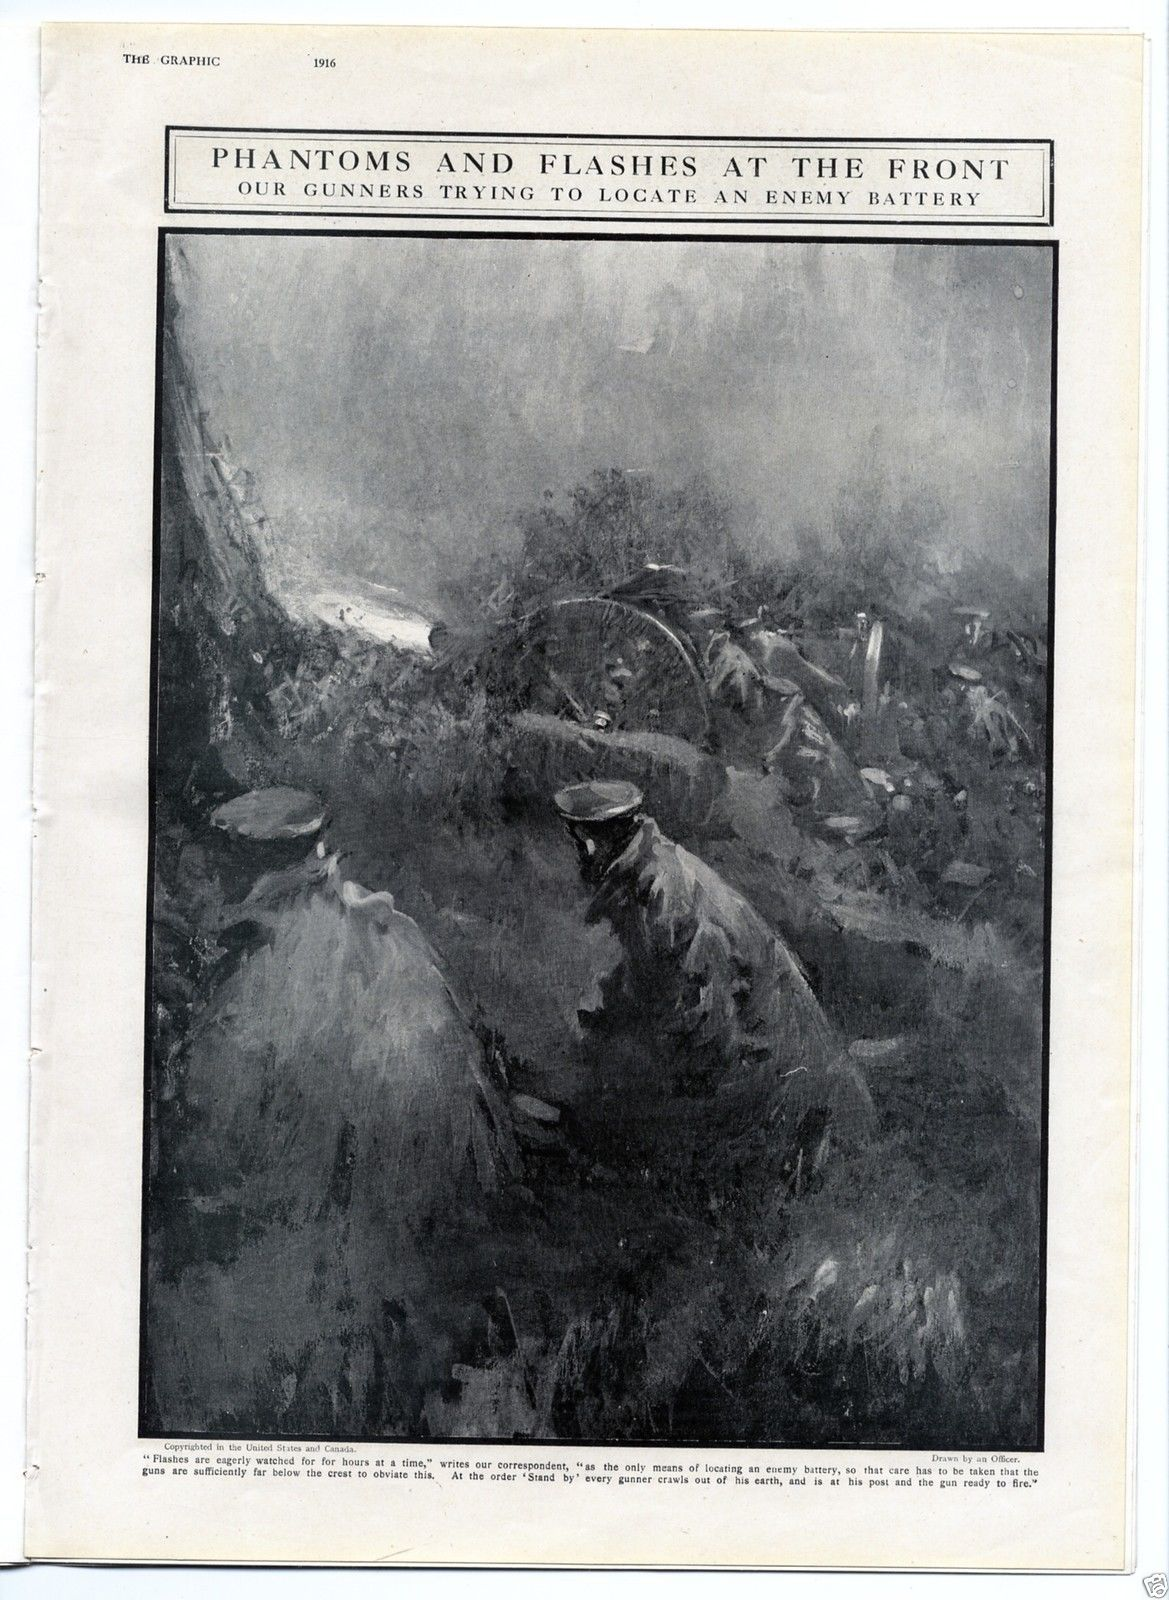 1916 THE GRAPHIC Newspaper WW1 GUTERSLOH POW s Verdun BARBED WIRE ...